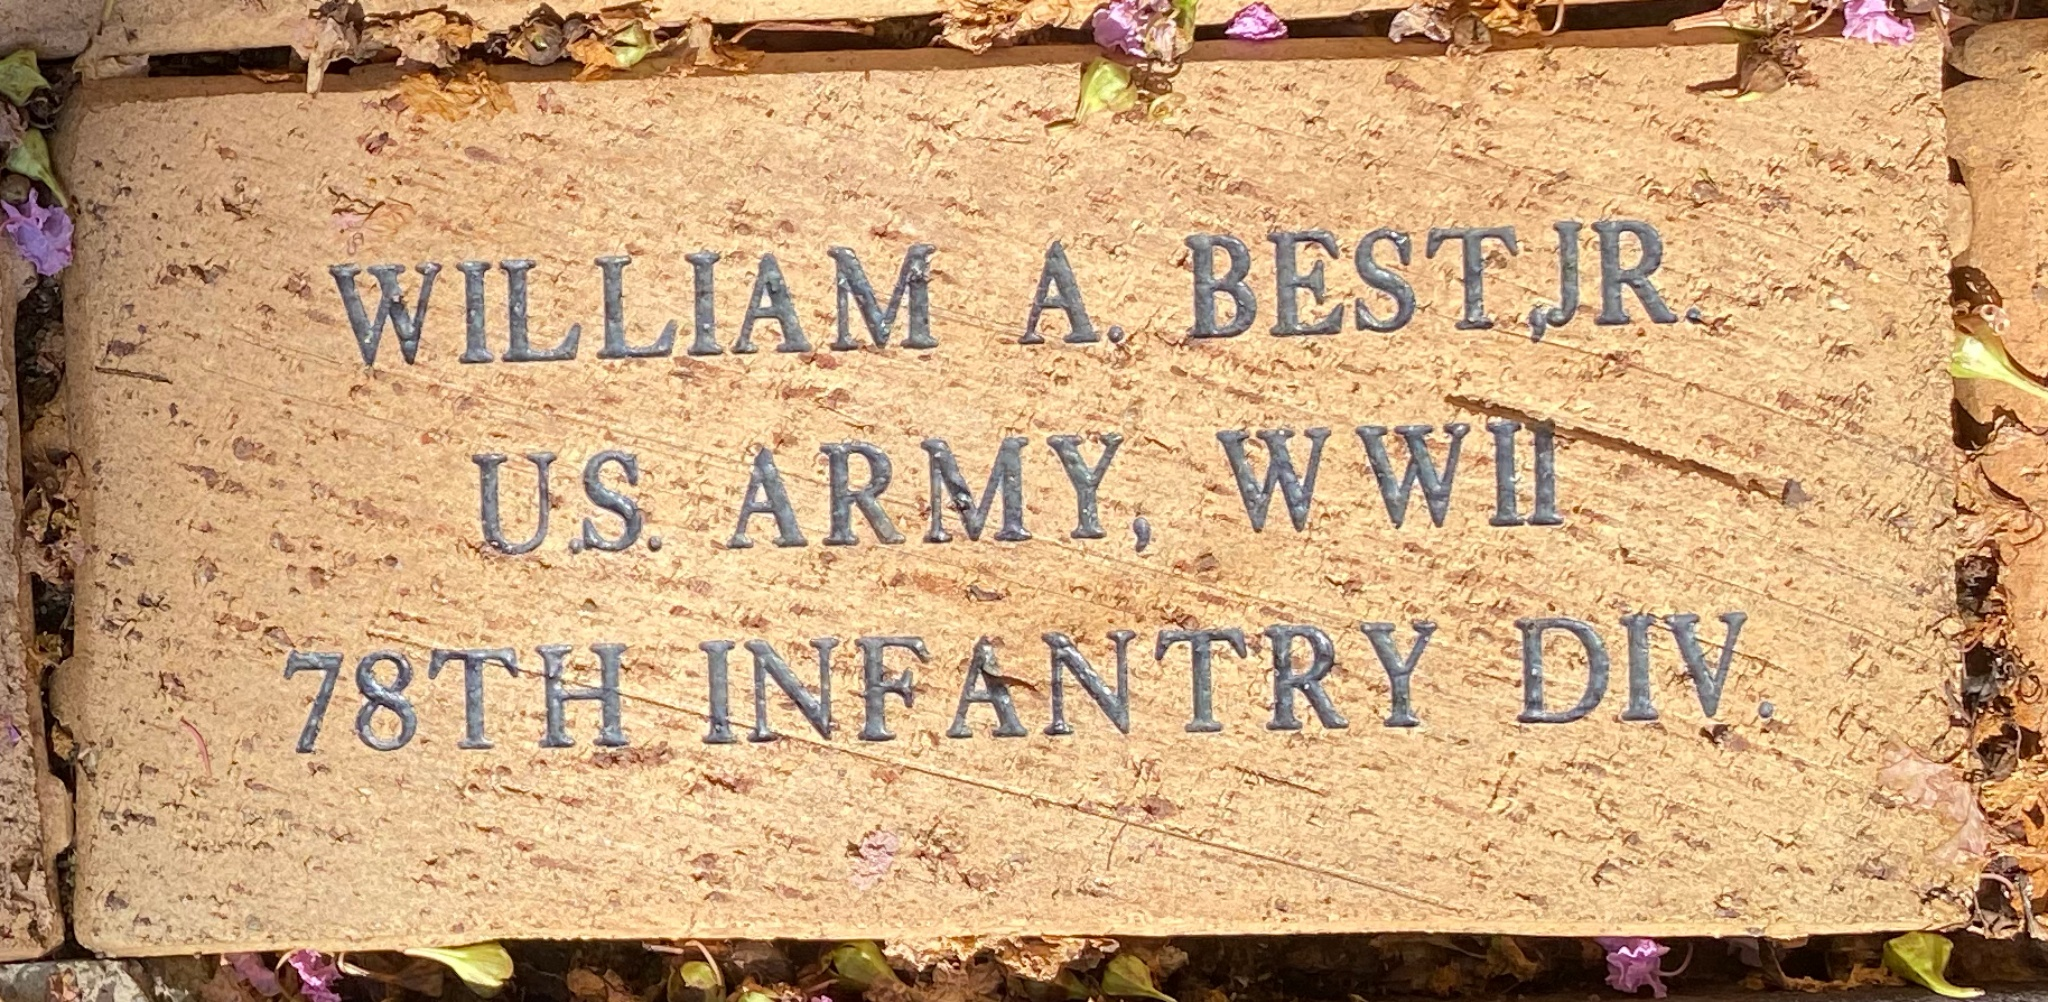 WILLIAM A. BEST, JR U.S. ARMY, WWII 78TH INFANTRY DIV